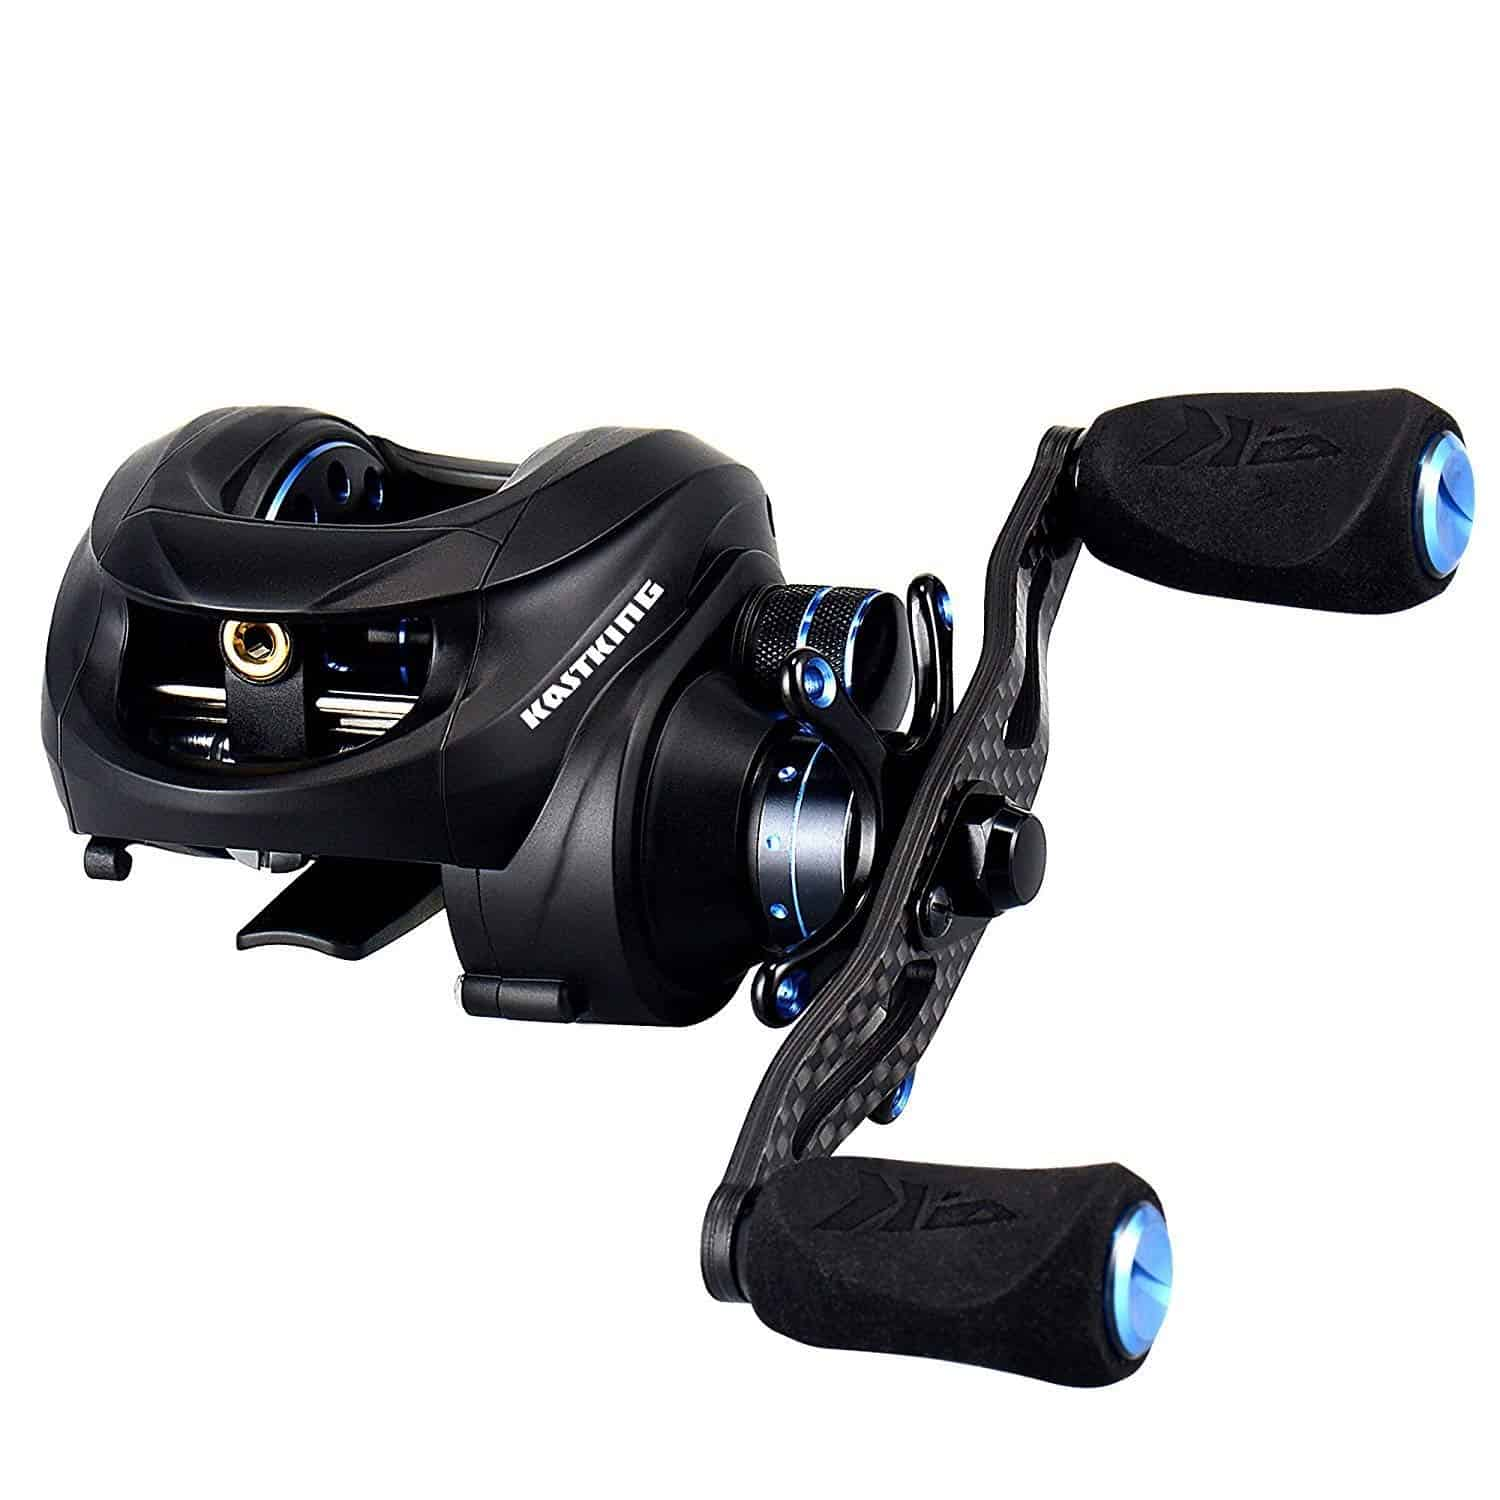 KastKing NEW Assassin Carbon Baitcasting Reel with Dual Brakes